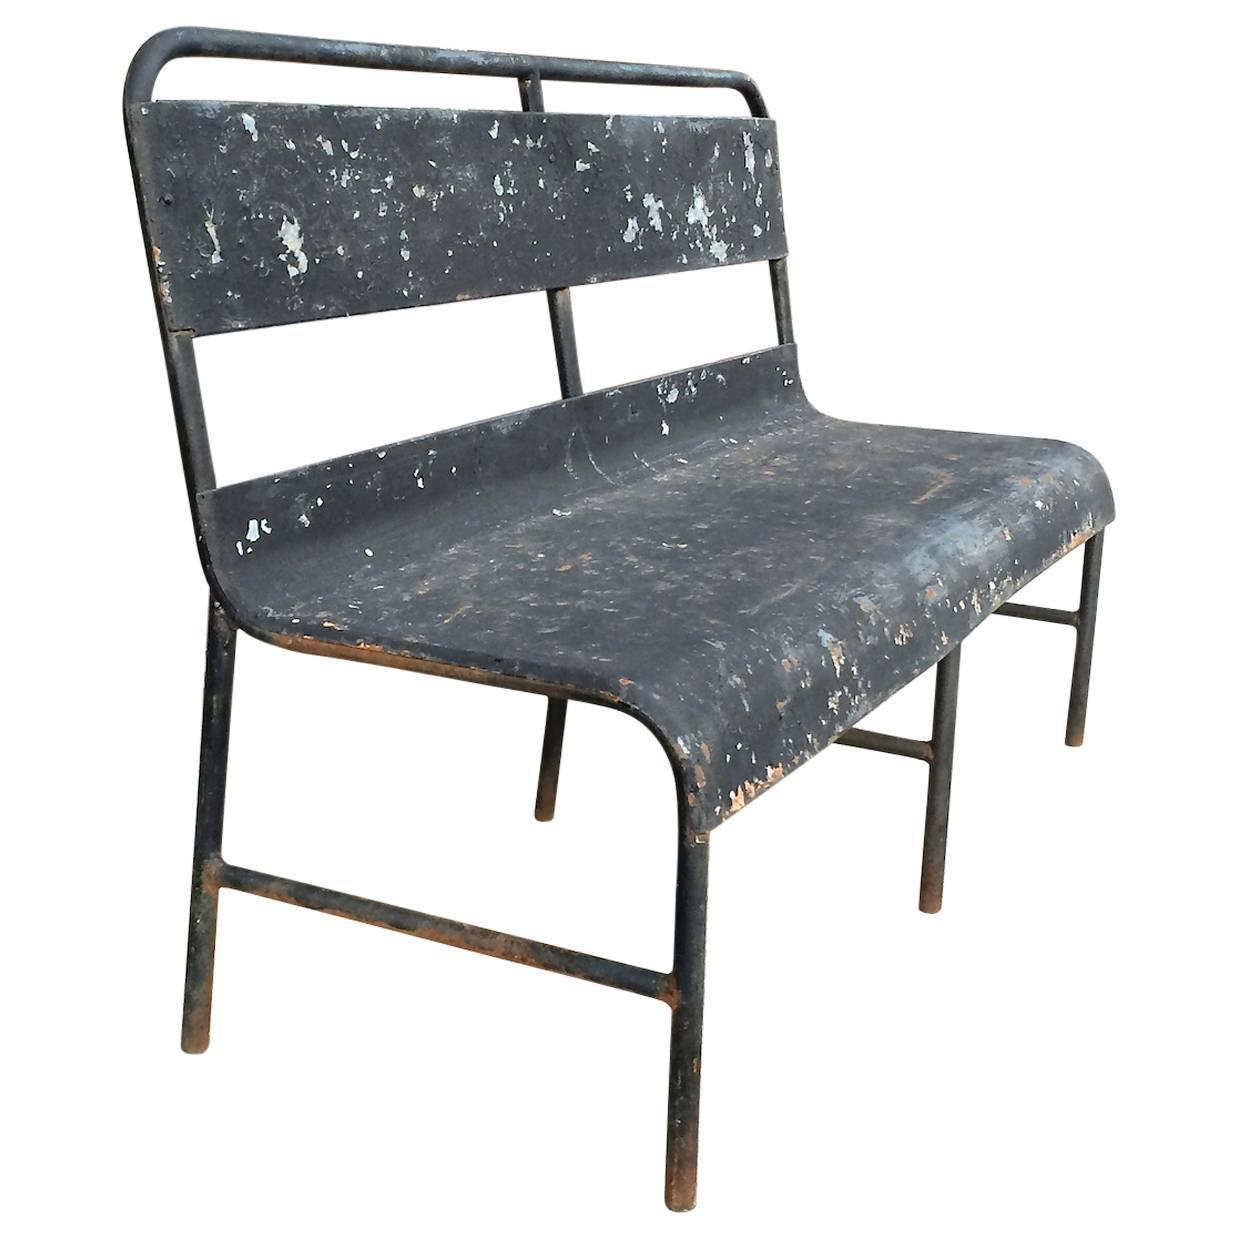 1940s Industrial Painted Steel Navy Ship Bench At 1stdibs